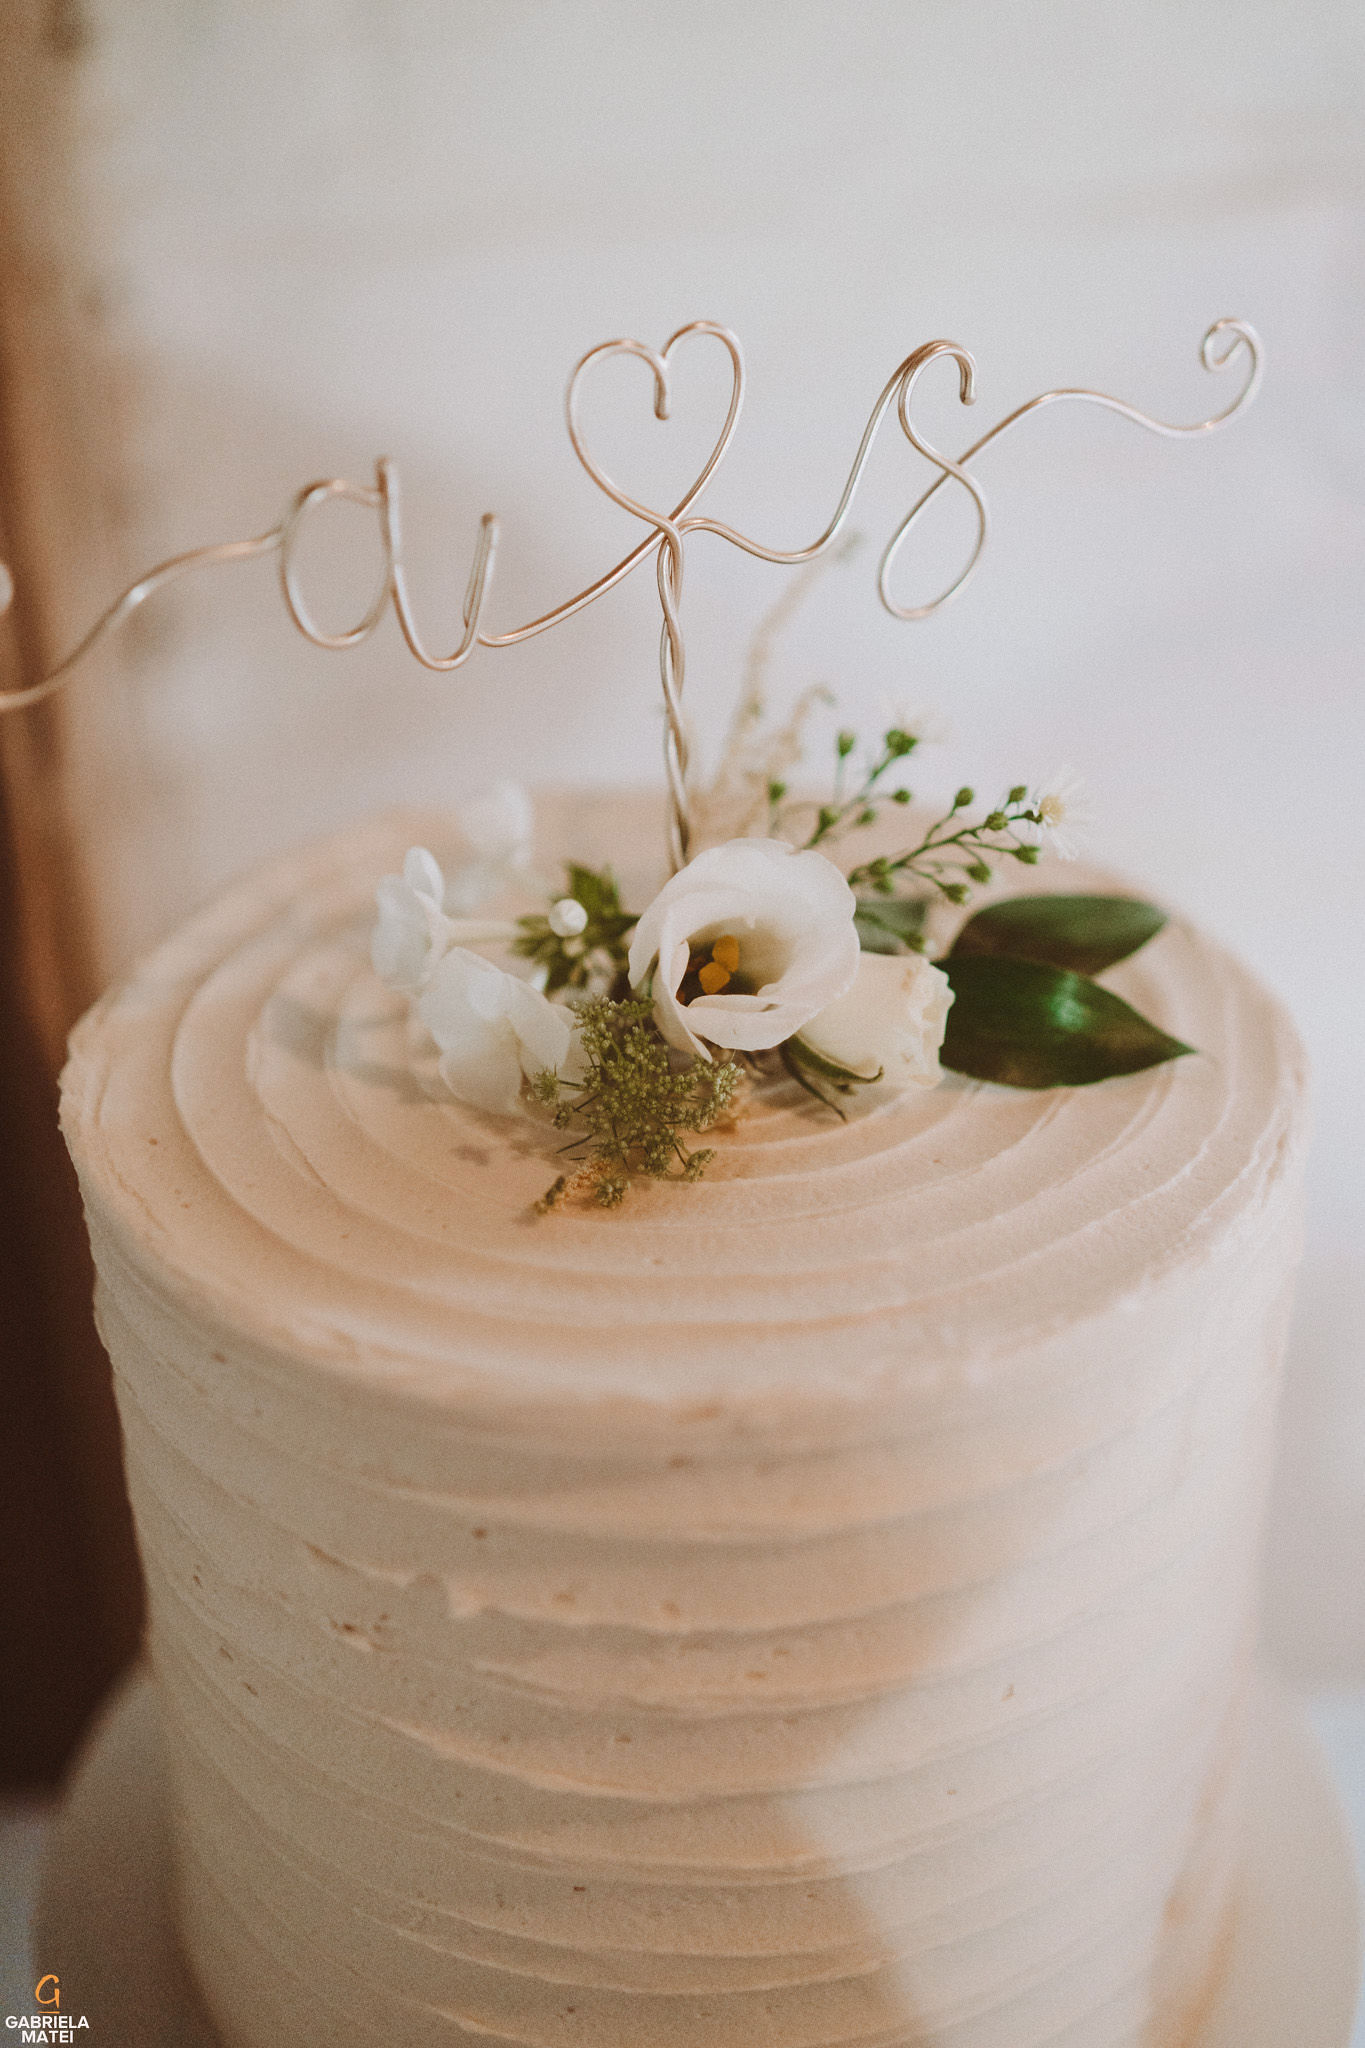 wedding cake at South Stoke Barn wedding venue in Arundel by gabriela matei sussex photographer